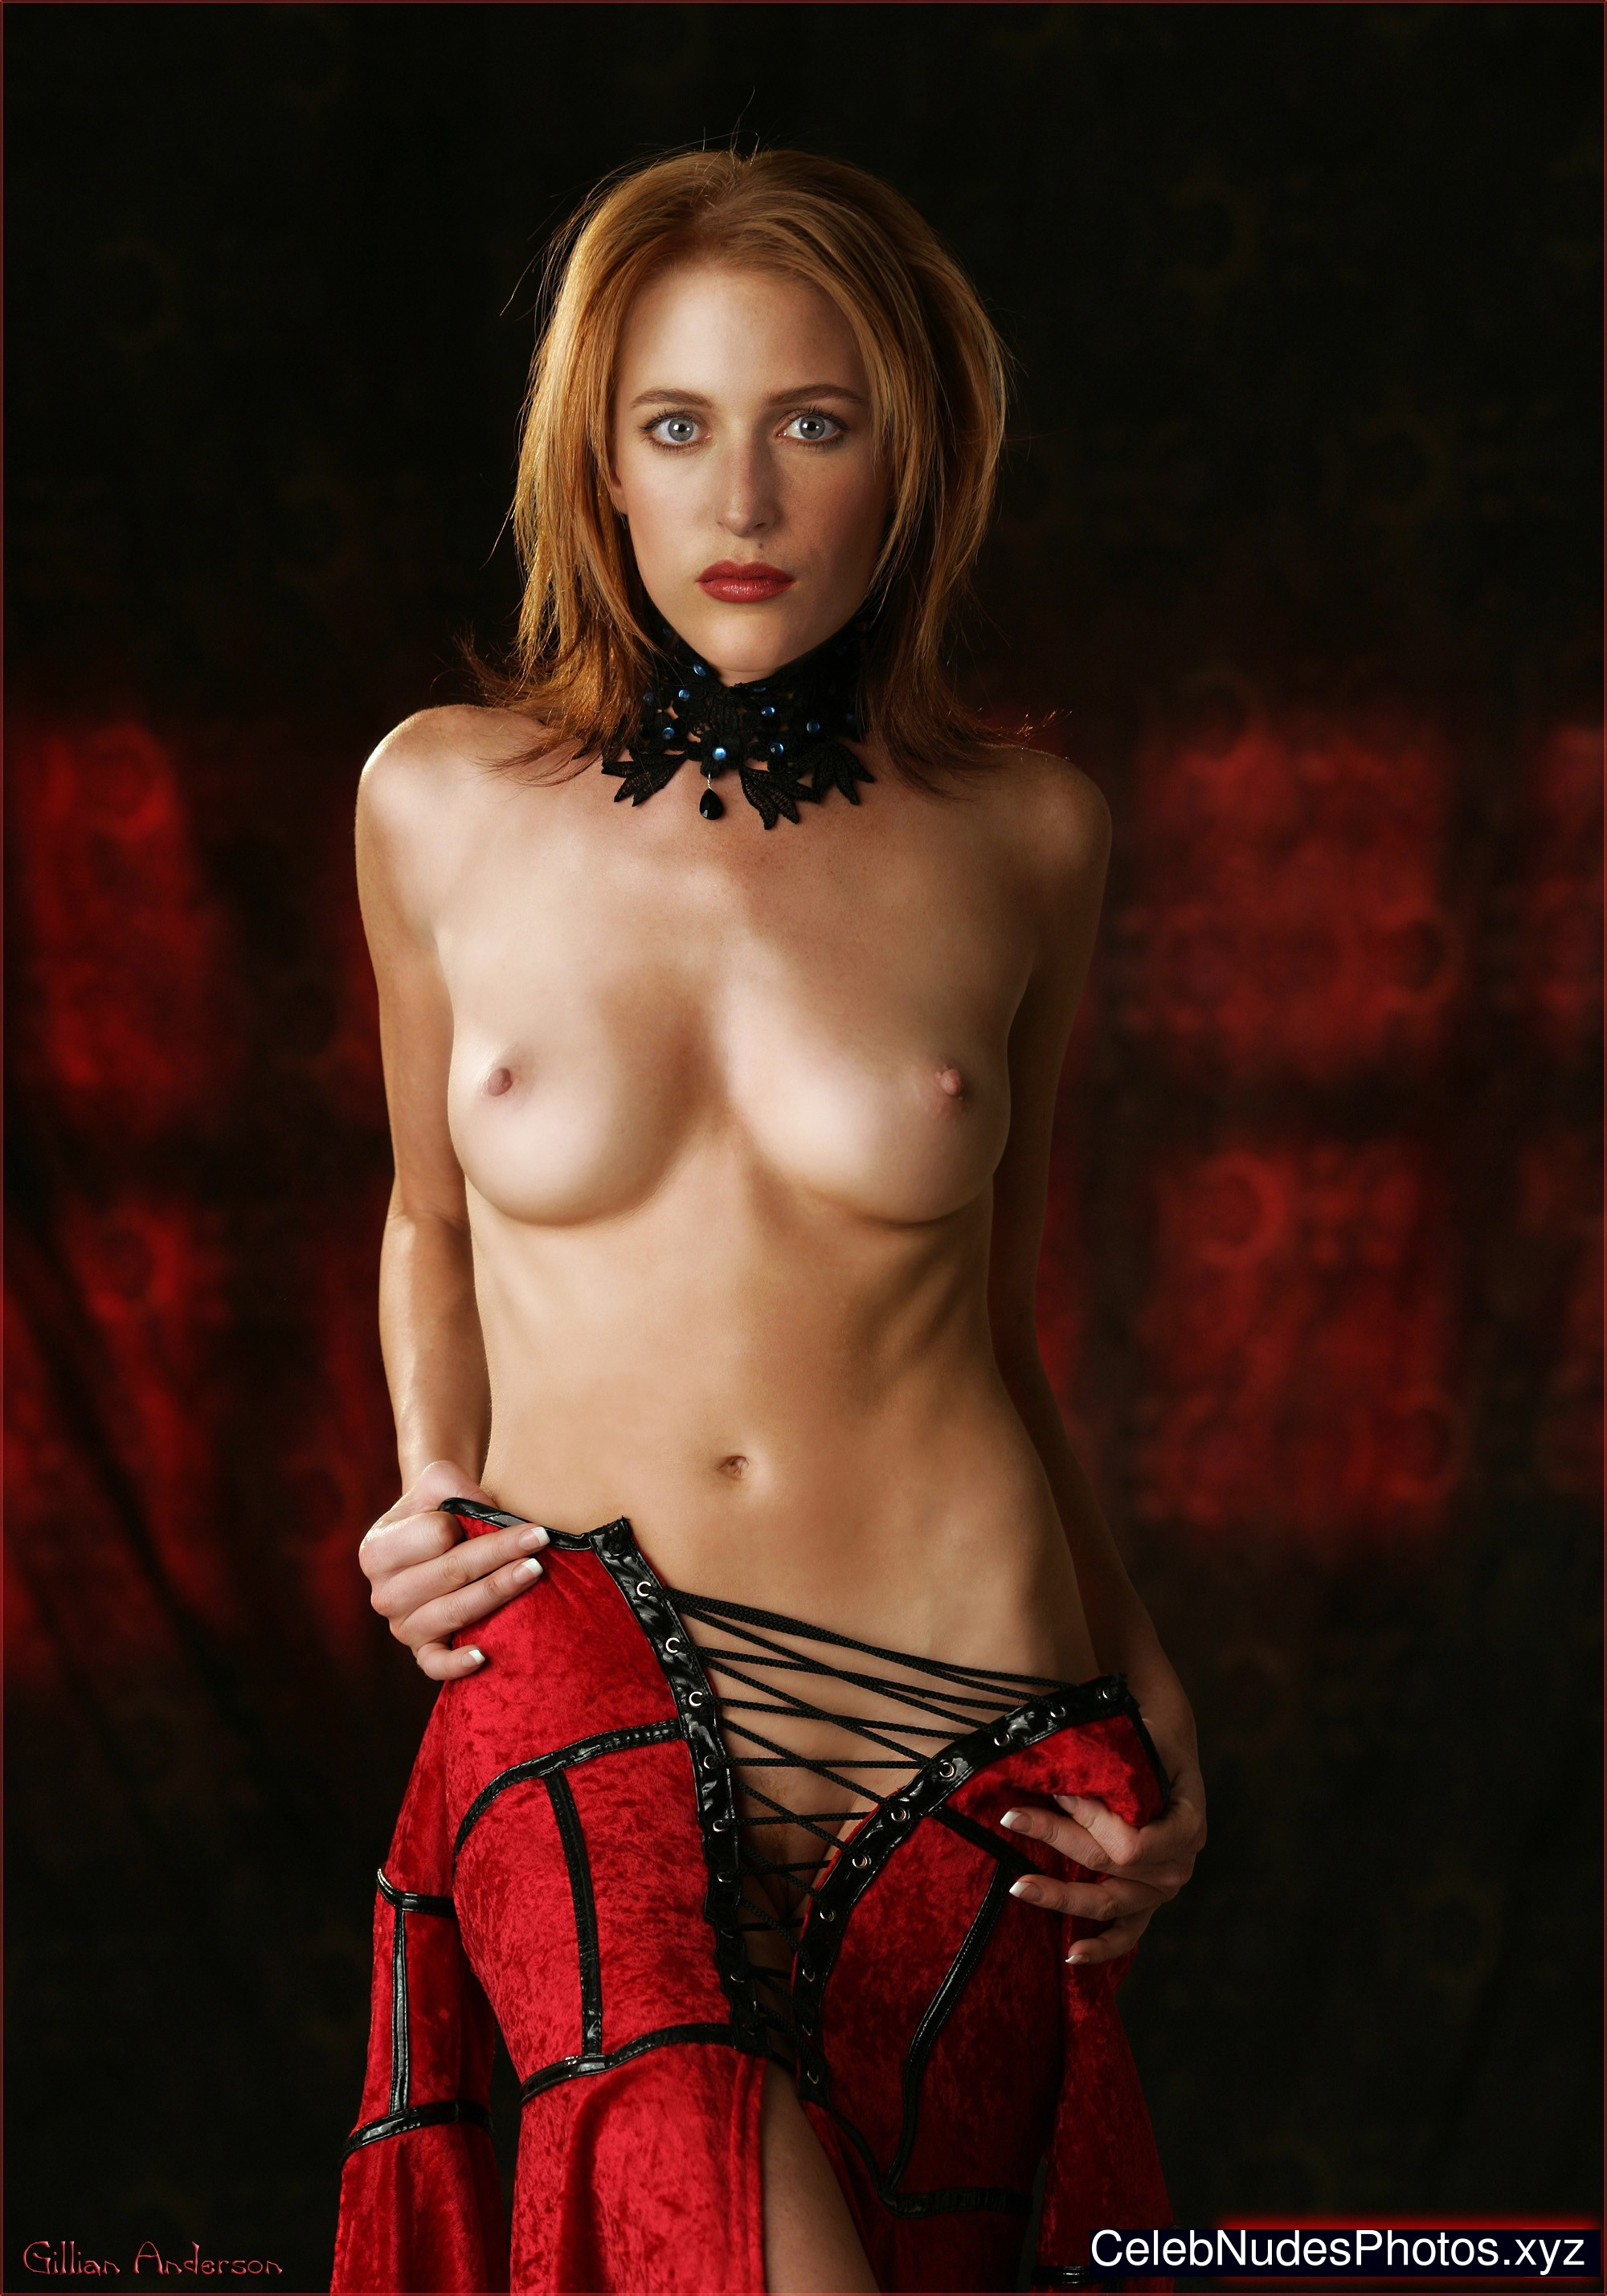 gillian anderson totally naked